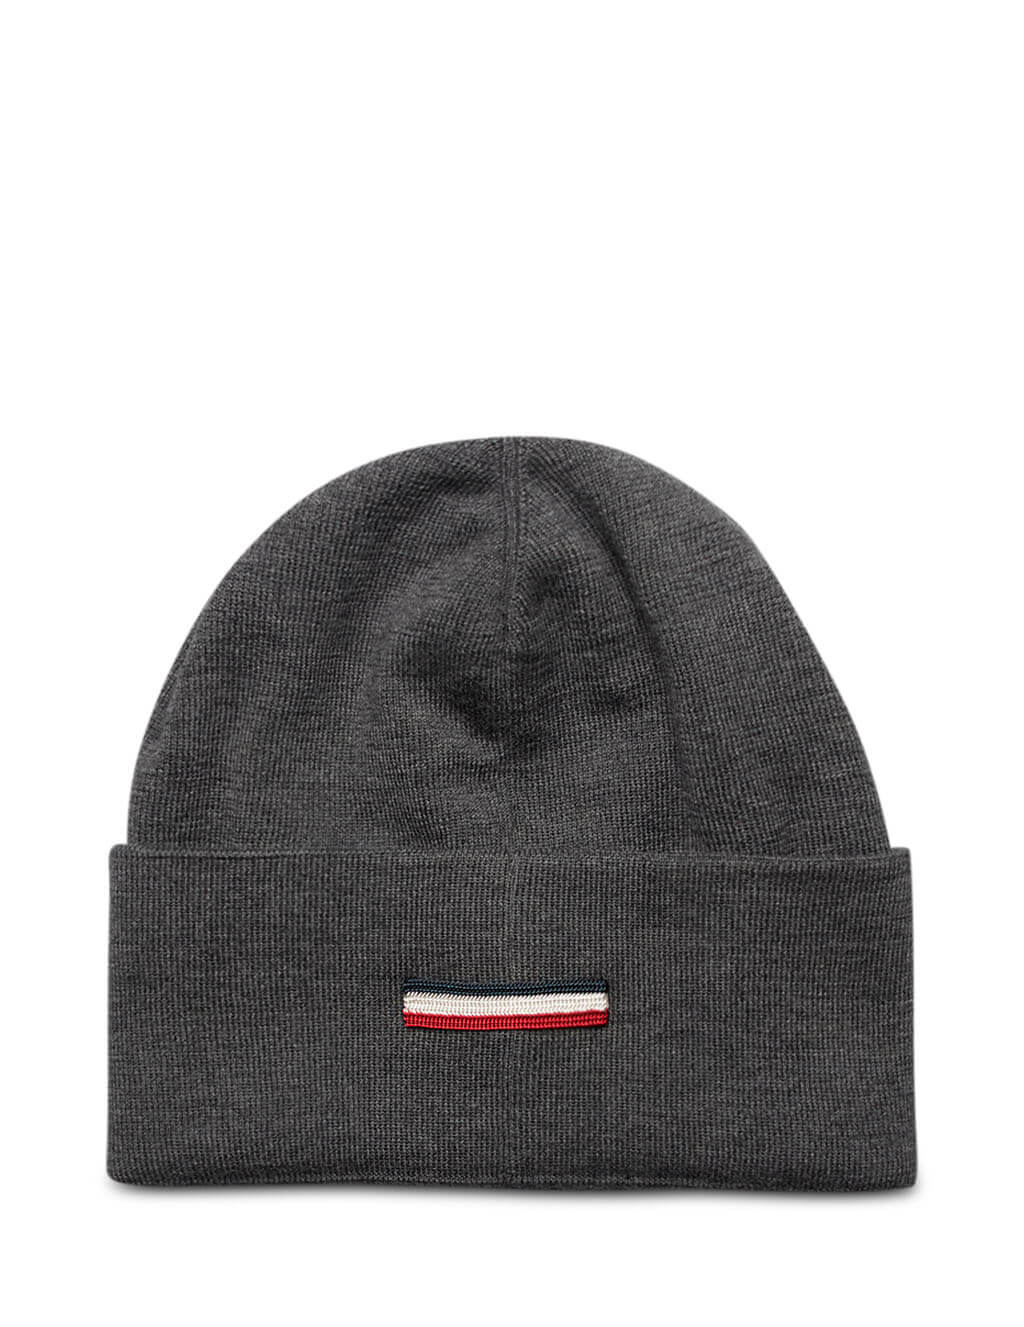 Moncler Men's Giulio Fashion Charcoal Knitted Beanie 0919Z73600A9526998